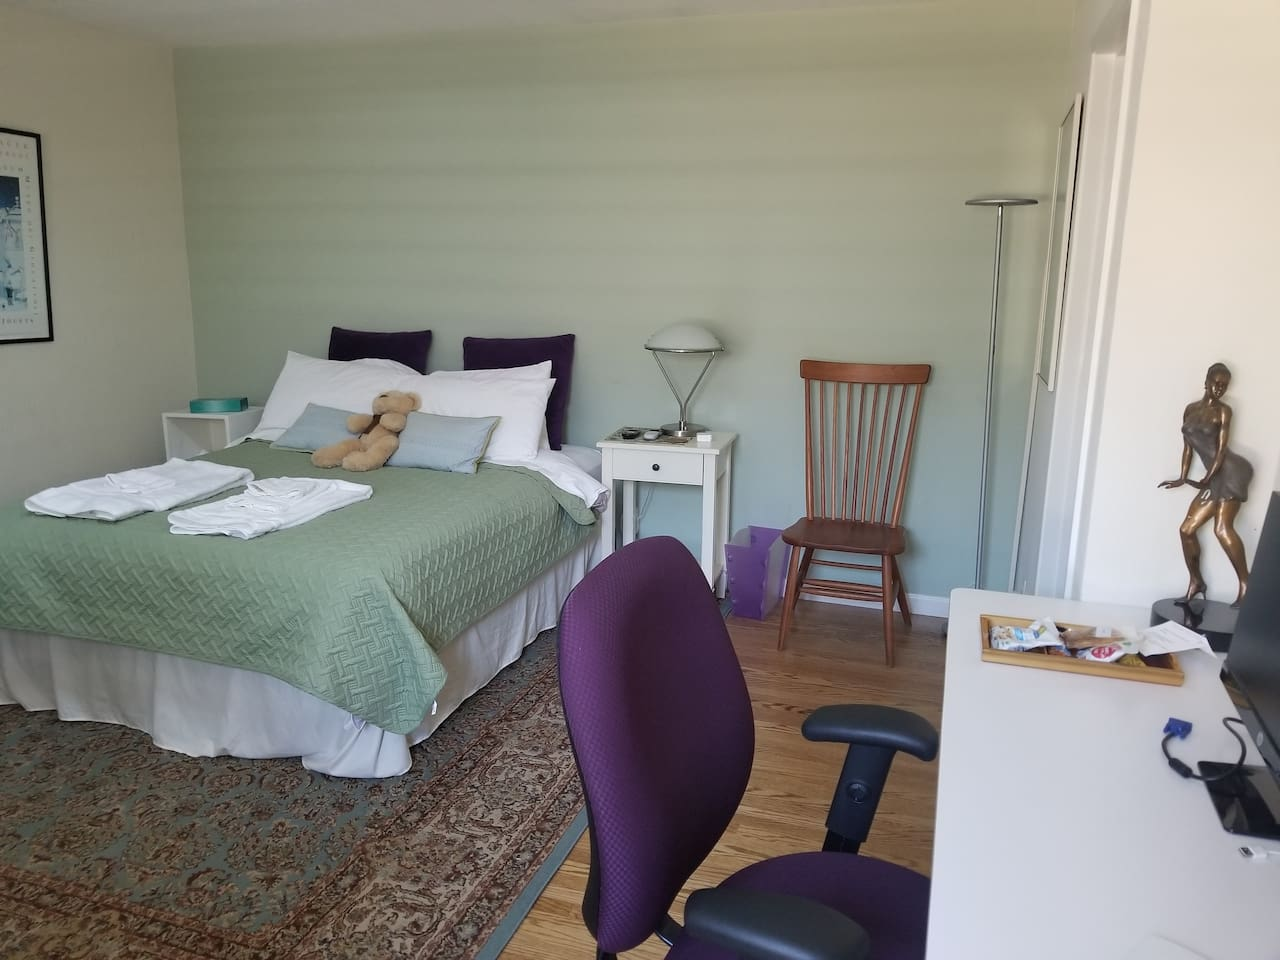 Large, bright and comfortable bedroom with en-suite bath, sofa and desk.